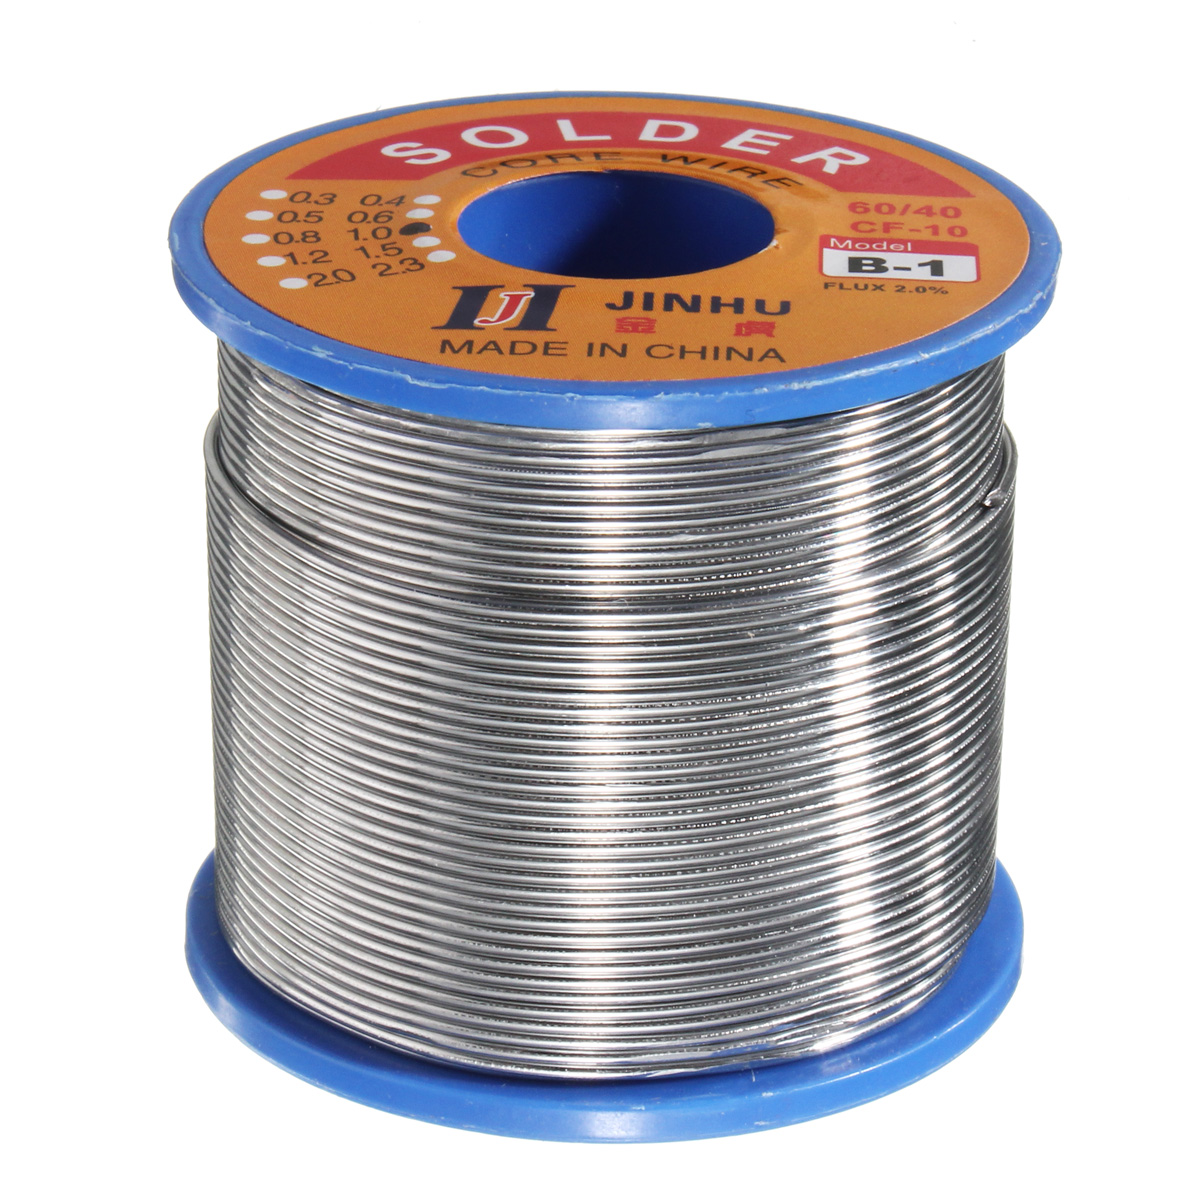 60/40 400g 1mm Rosin Core Solder Tin Lead 2% Flux Soldering Welding Iron Wire for Circuit Board Electronics Devices